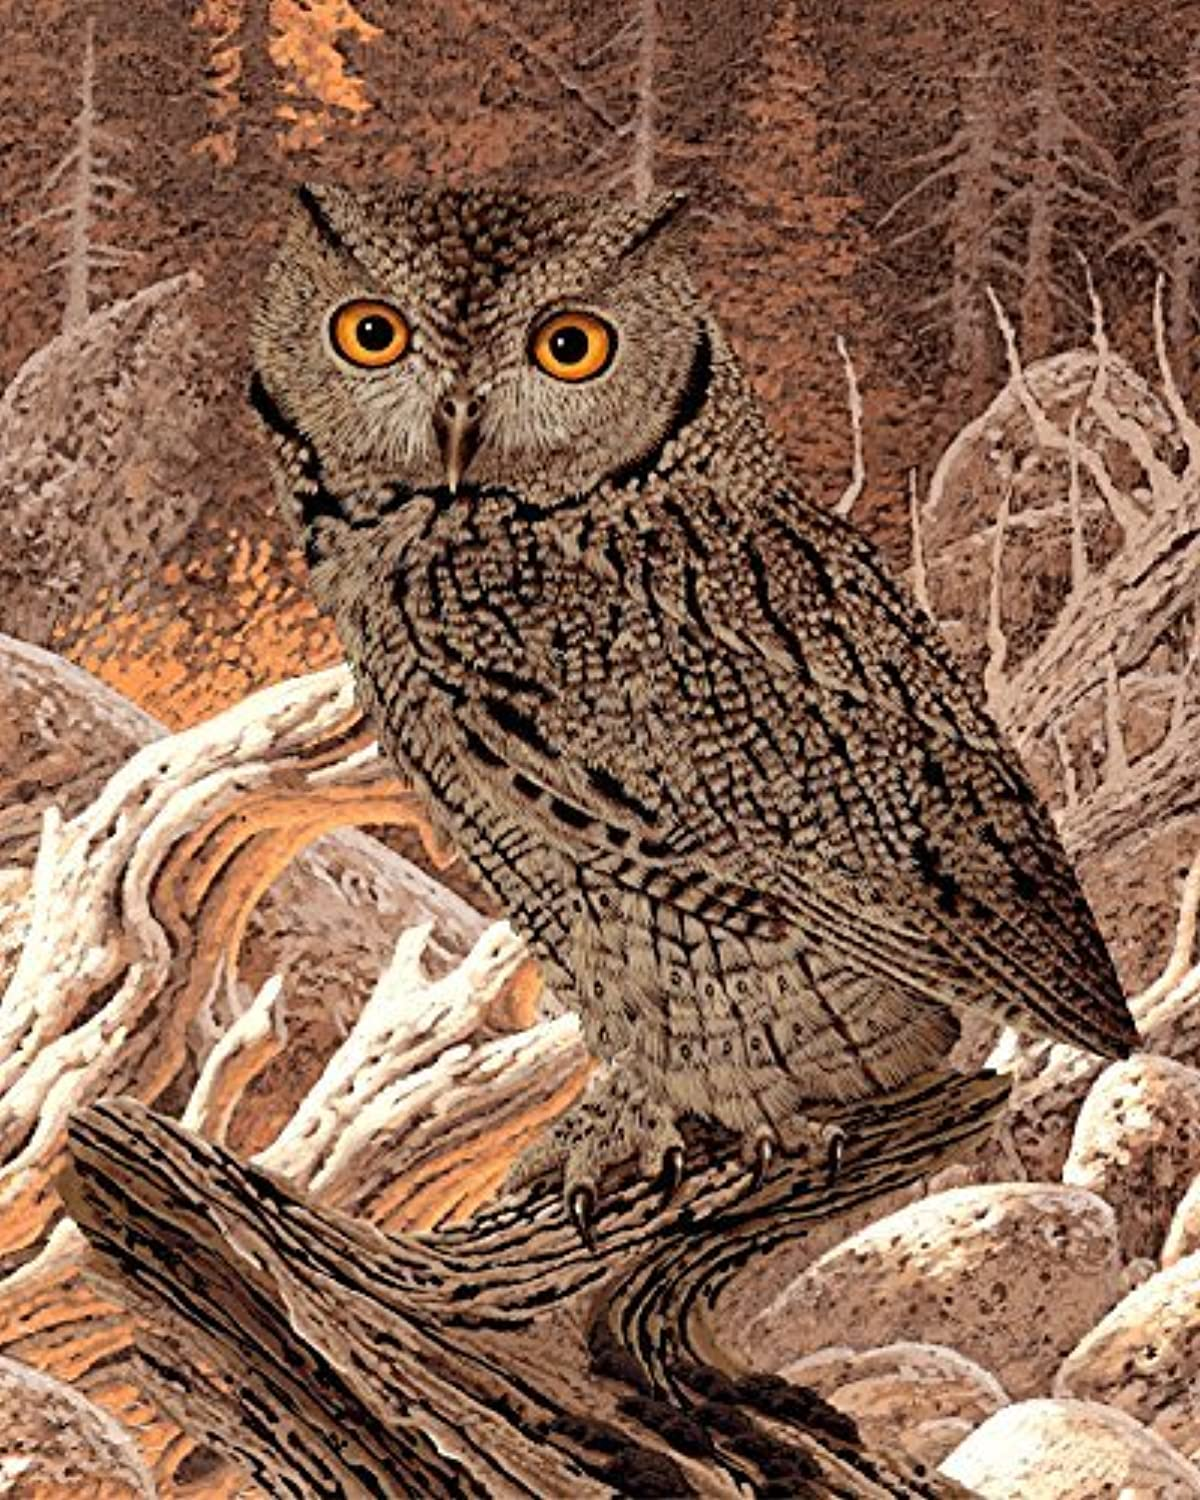 Screech Owl 504 Piece Jigsaw Puzzle 16 X 20 by CVPuzzles